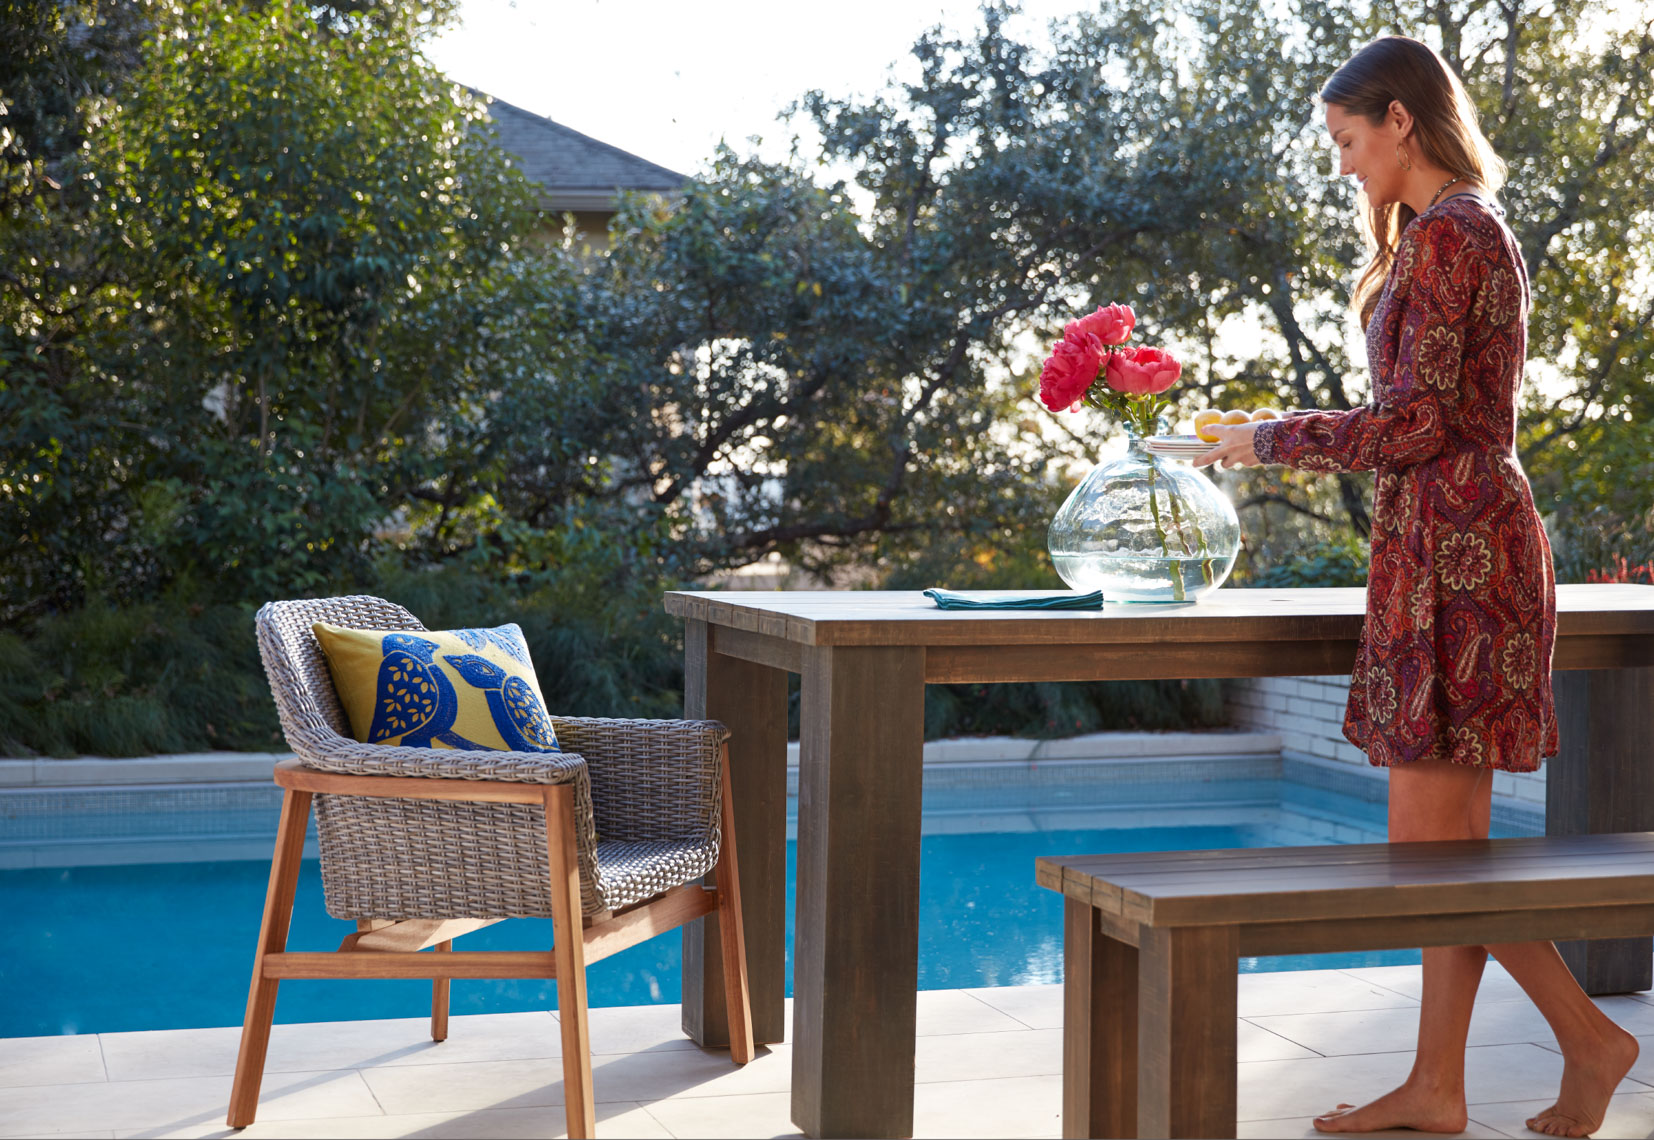 Woman in dress stands arranging flowers in a glass vase on a wooden table in the sun by the pool San Francisco lifestyle photographer